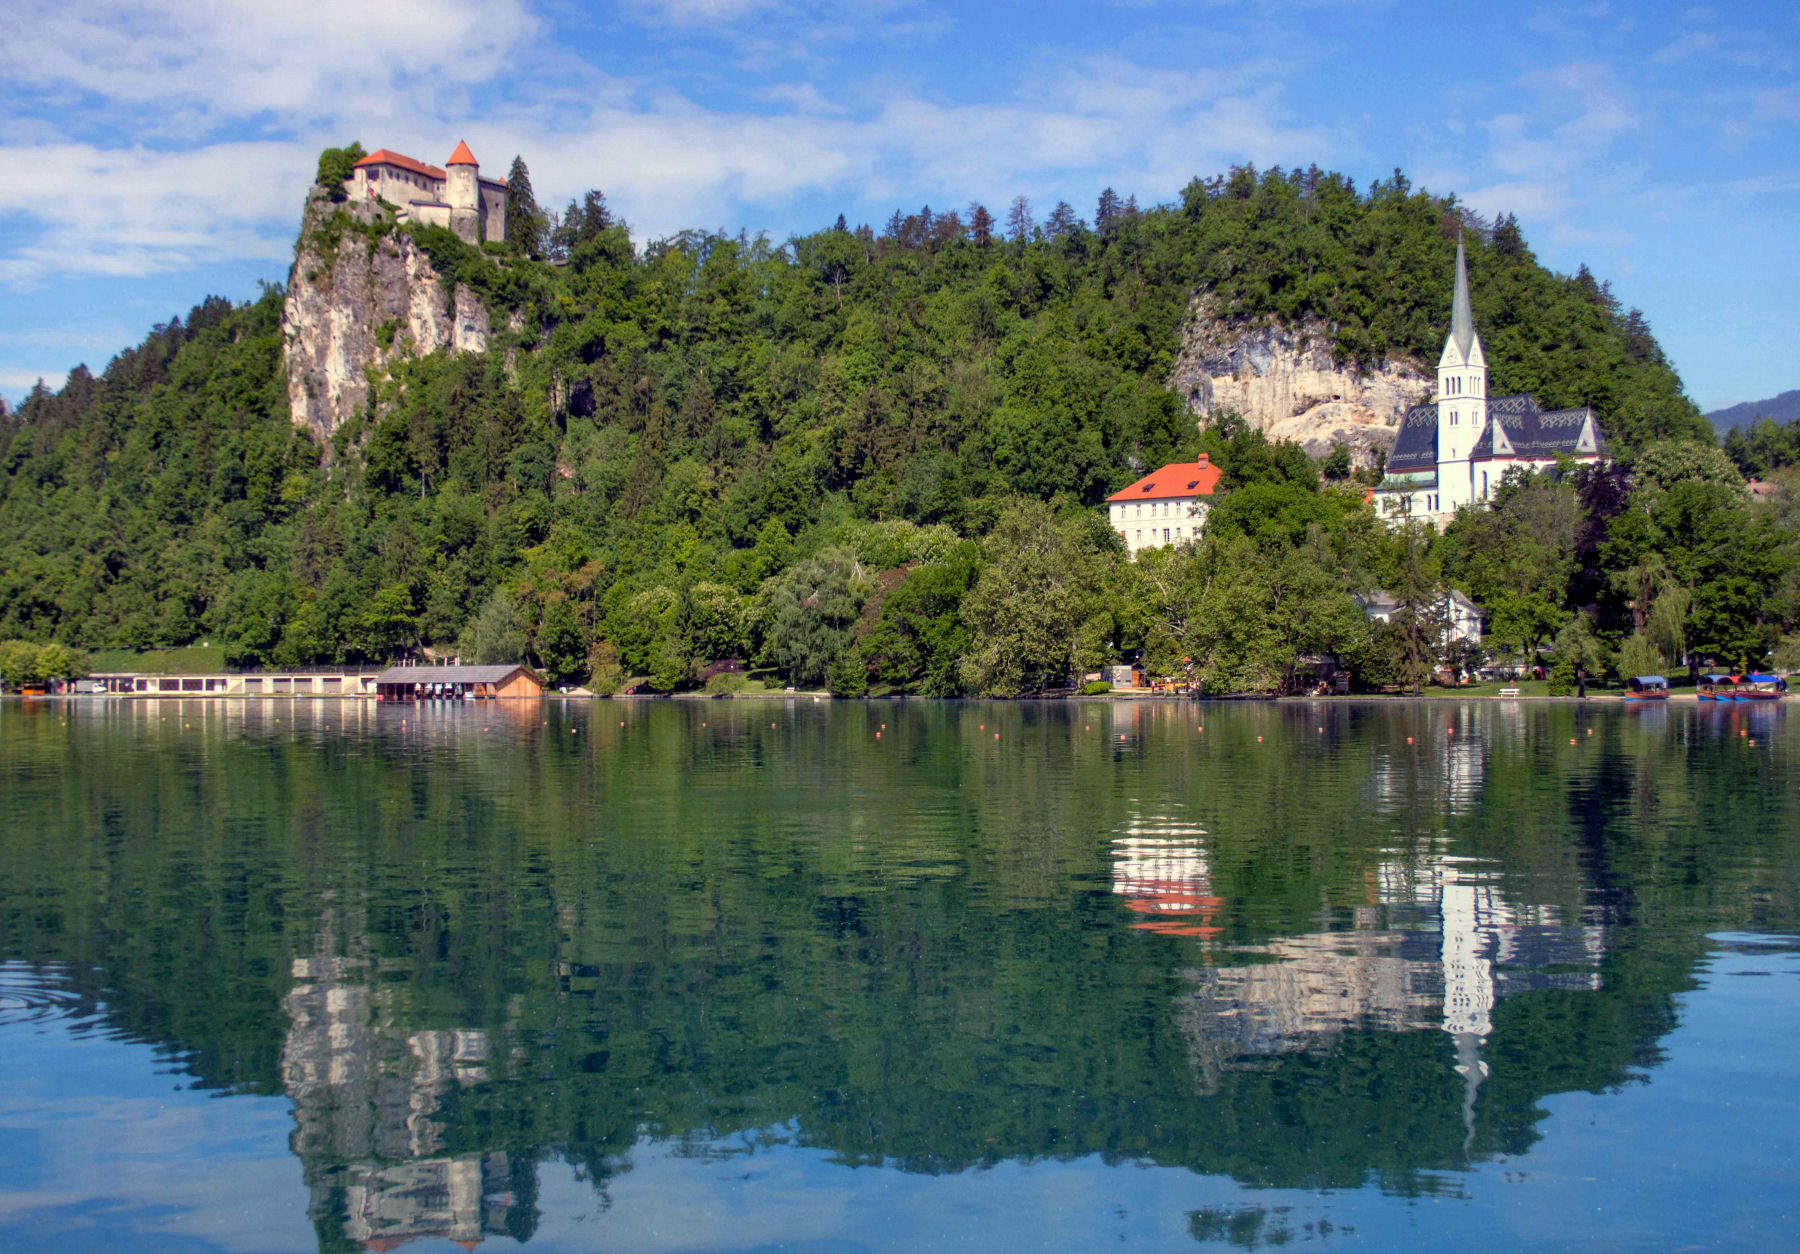 Overlooking Lake Bled is the iconic Bled Castle